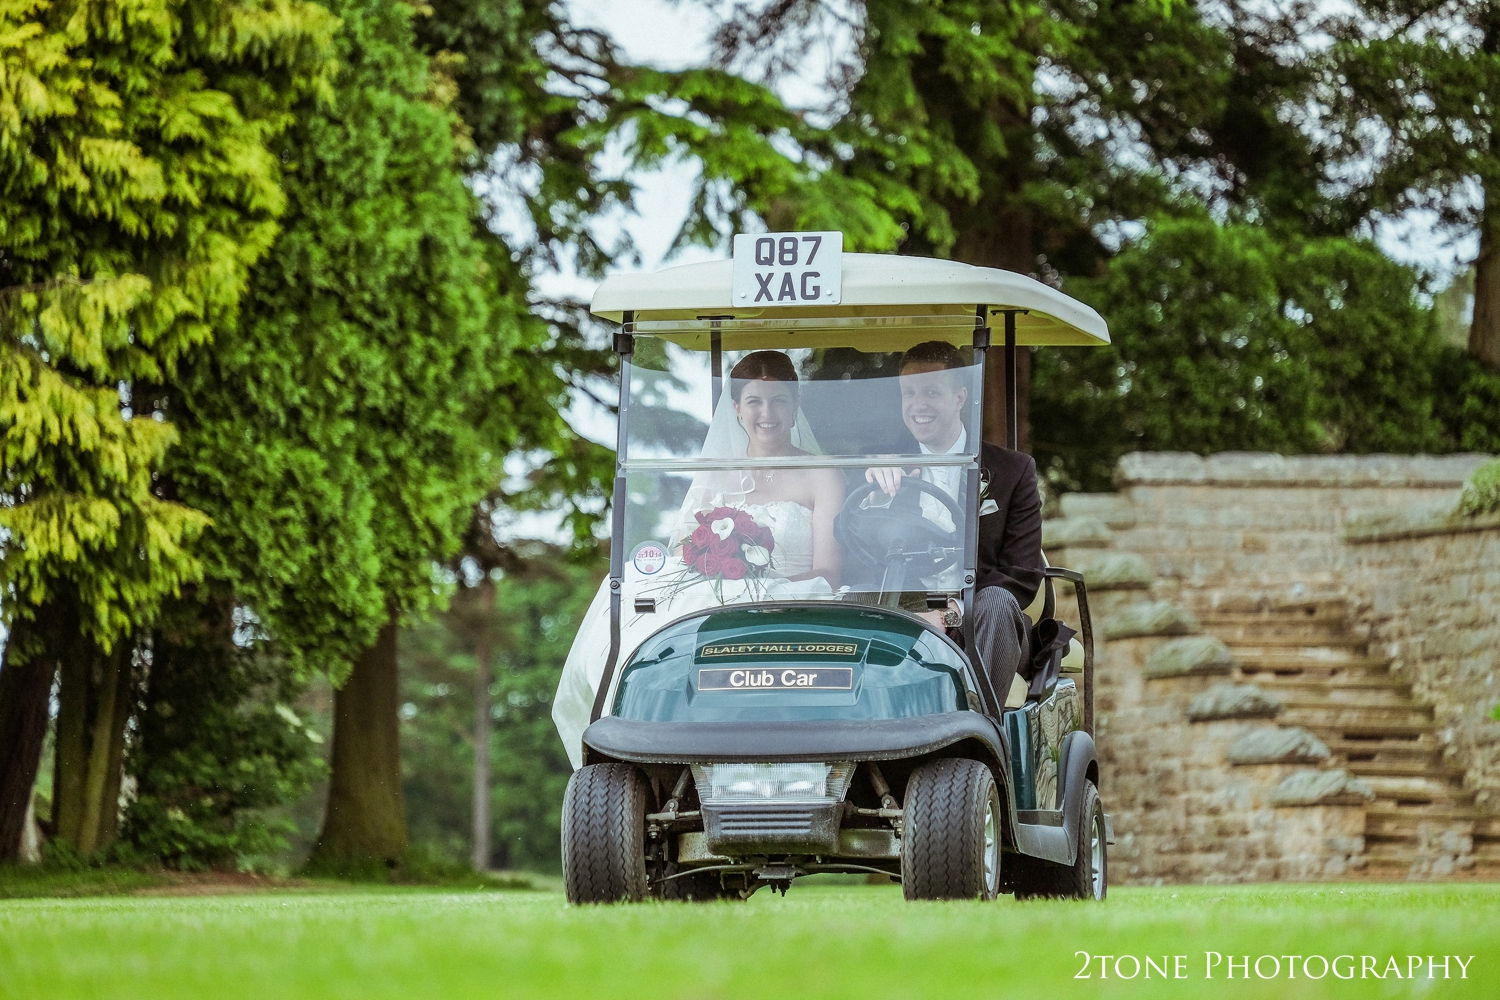 I had managed to get a key for one of Slaley Hall's golfbuggiesfrom the wedding co ordinator and had it hidden in my pocket throughout much of the drinks reception andso when the time came for the four of us to head down to the garden, the buggywas ready and waiting for Paul to drive his bride to have their photographs taken. I gave him the key andPaul grinnedlike a kid in a very large toy shop!!